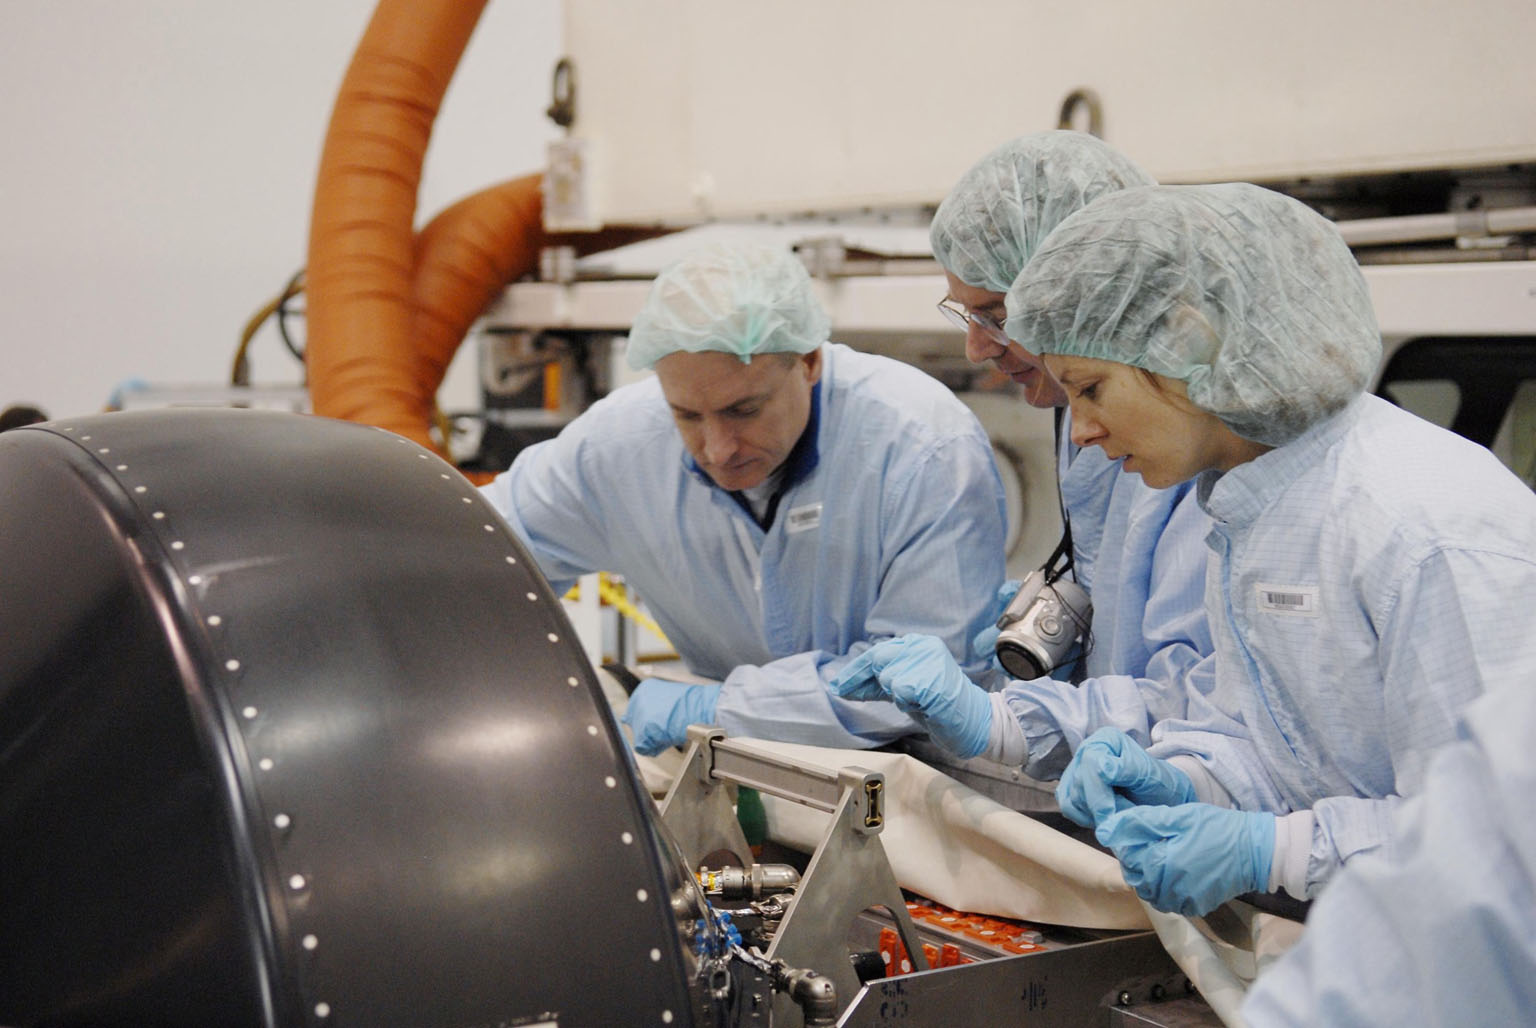 KENNEDY SPACE CENTER, FLA. -- In the Space Station Processing Facility, members of the STS-118 crew learn important information from technicians about the control moment gyro (CMG) in front of them that is part of the payload on their mission. At left is Commander Scott Kelly; at right is Mission Specialist Tracy Caldwell. The CMG will replace a faulty one on the International Space Station. The payload also includes the SPACEHAB single cargo module, the third starboard truss segment (ITS S5) and the external stowage platform 3 (ESP3). STS-118 is targeted to launch June 28 from Launch Pad 39A. Photo credit: NASA/Kim Shiflett